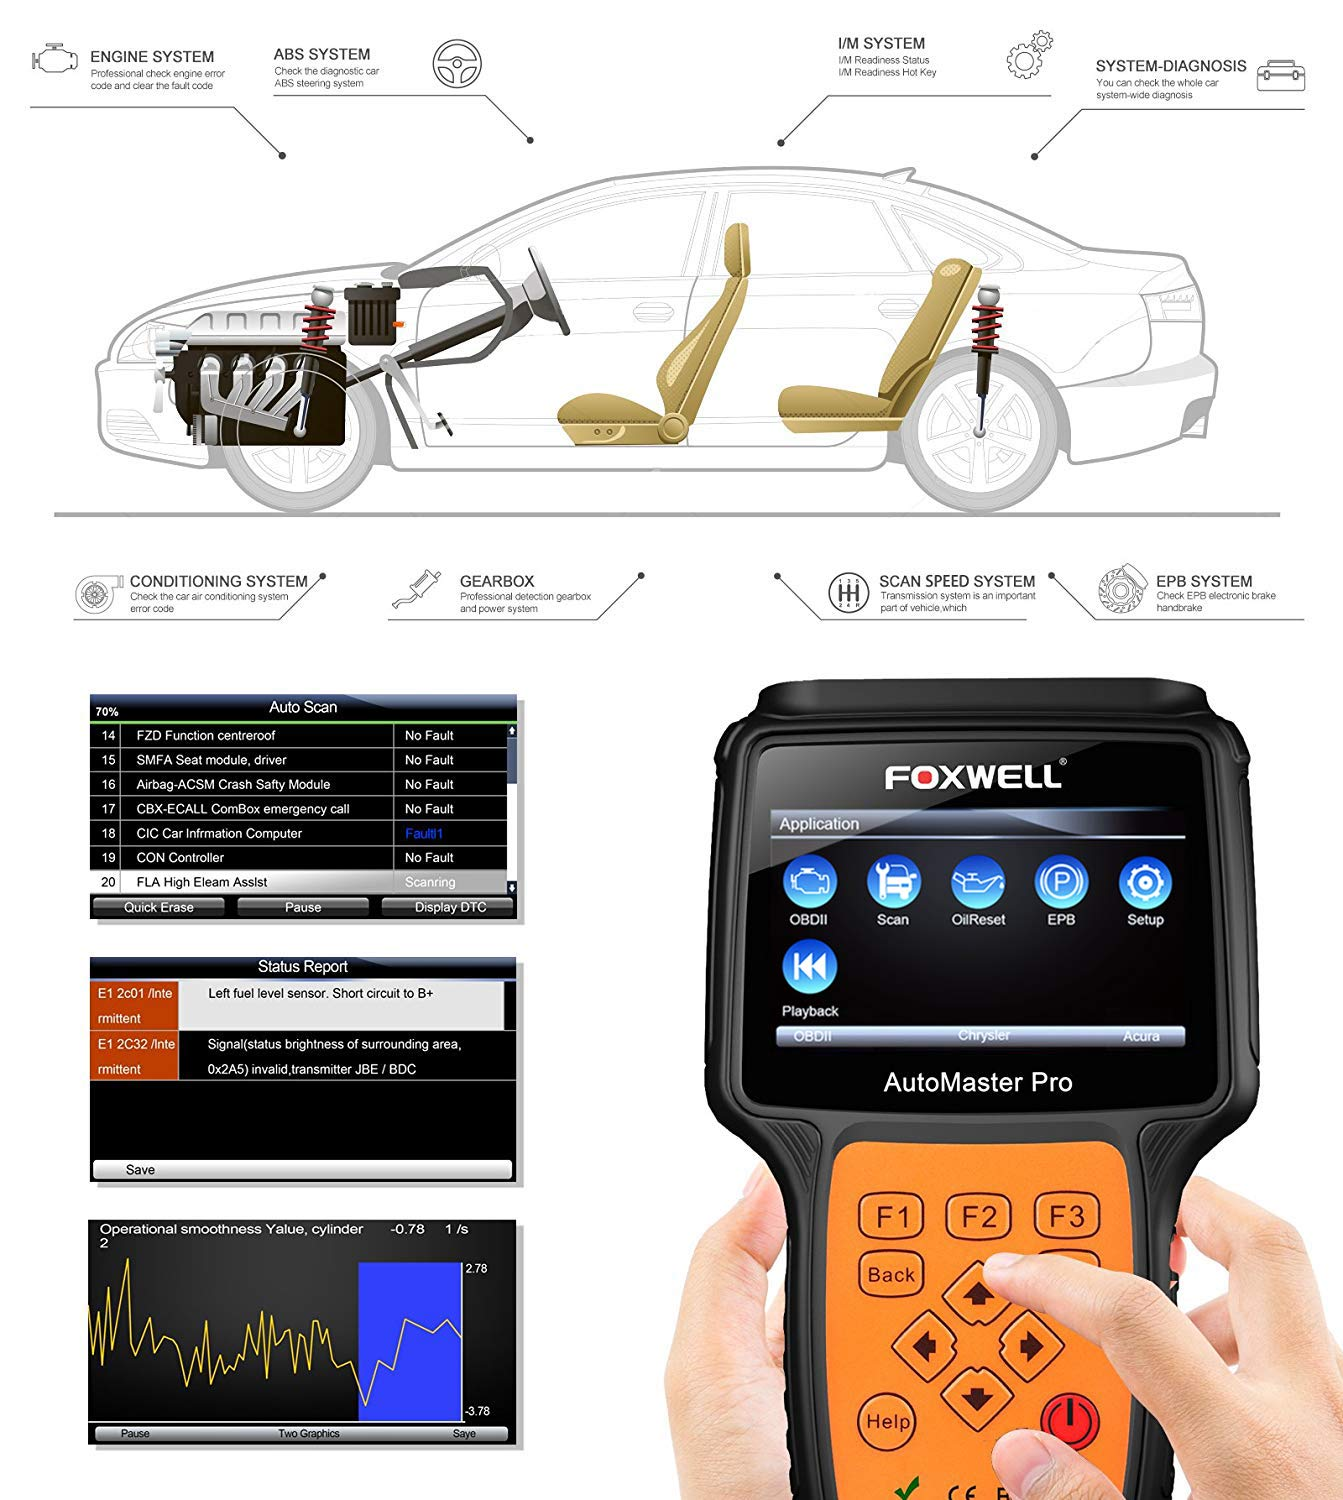 Foxwell Nt624 Pro Professional Automotive Obd2 Scanner Wiring Diagram For Auto Meter Tach To Hook Up A 1995 Dodge Ram 1500 Obdii Code Reader Car All Systems Diagnostic Scan Tool With Abs Oil Light Reset And Epb